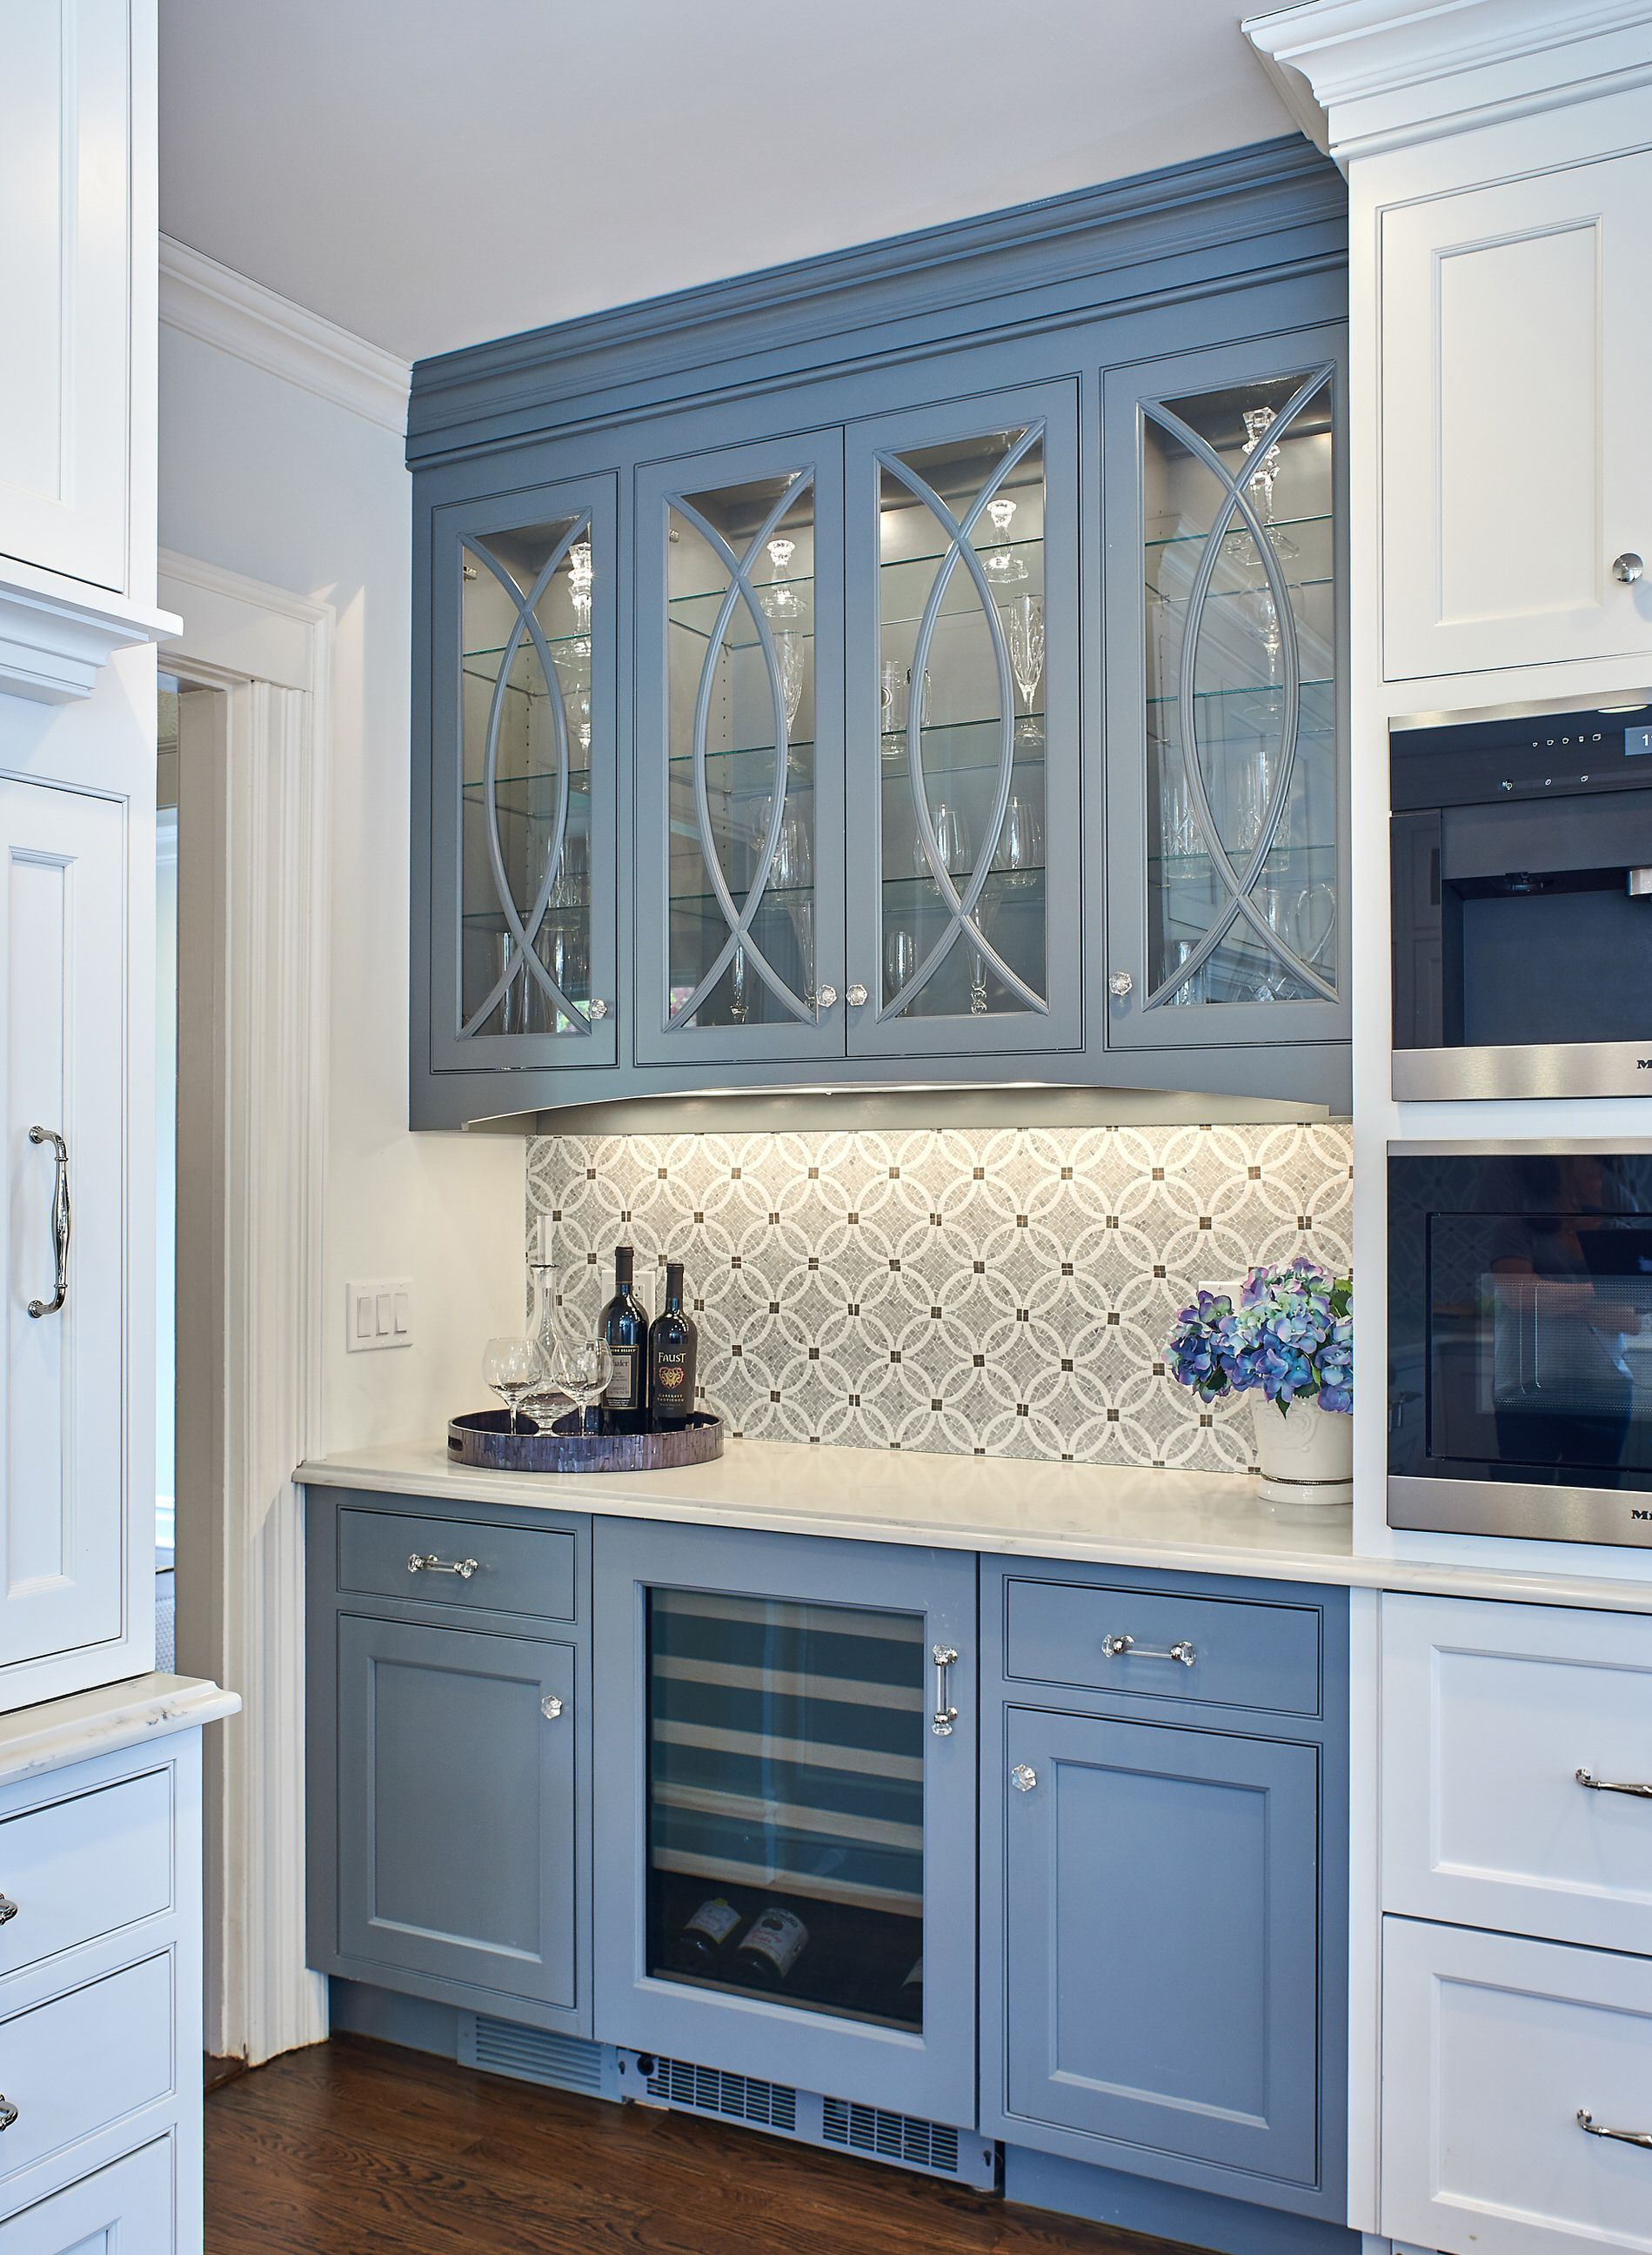 Find And Save Inspiration About Kitchen Island Designs Ideas On Steeringnews Com See More Ideas About Kitchen Island Bar Curved Kitchen Island Rustic Kitchen